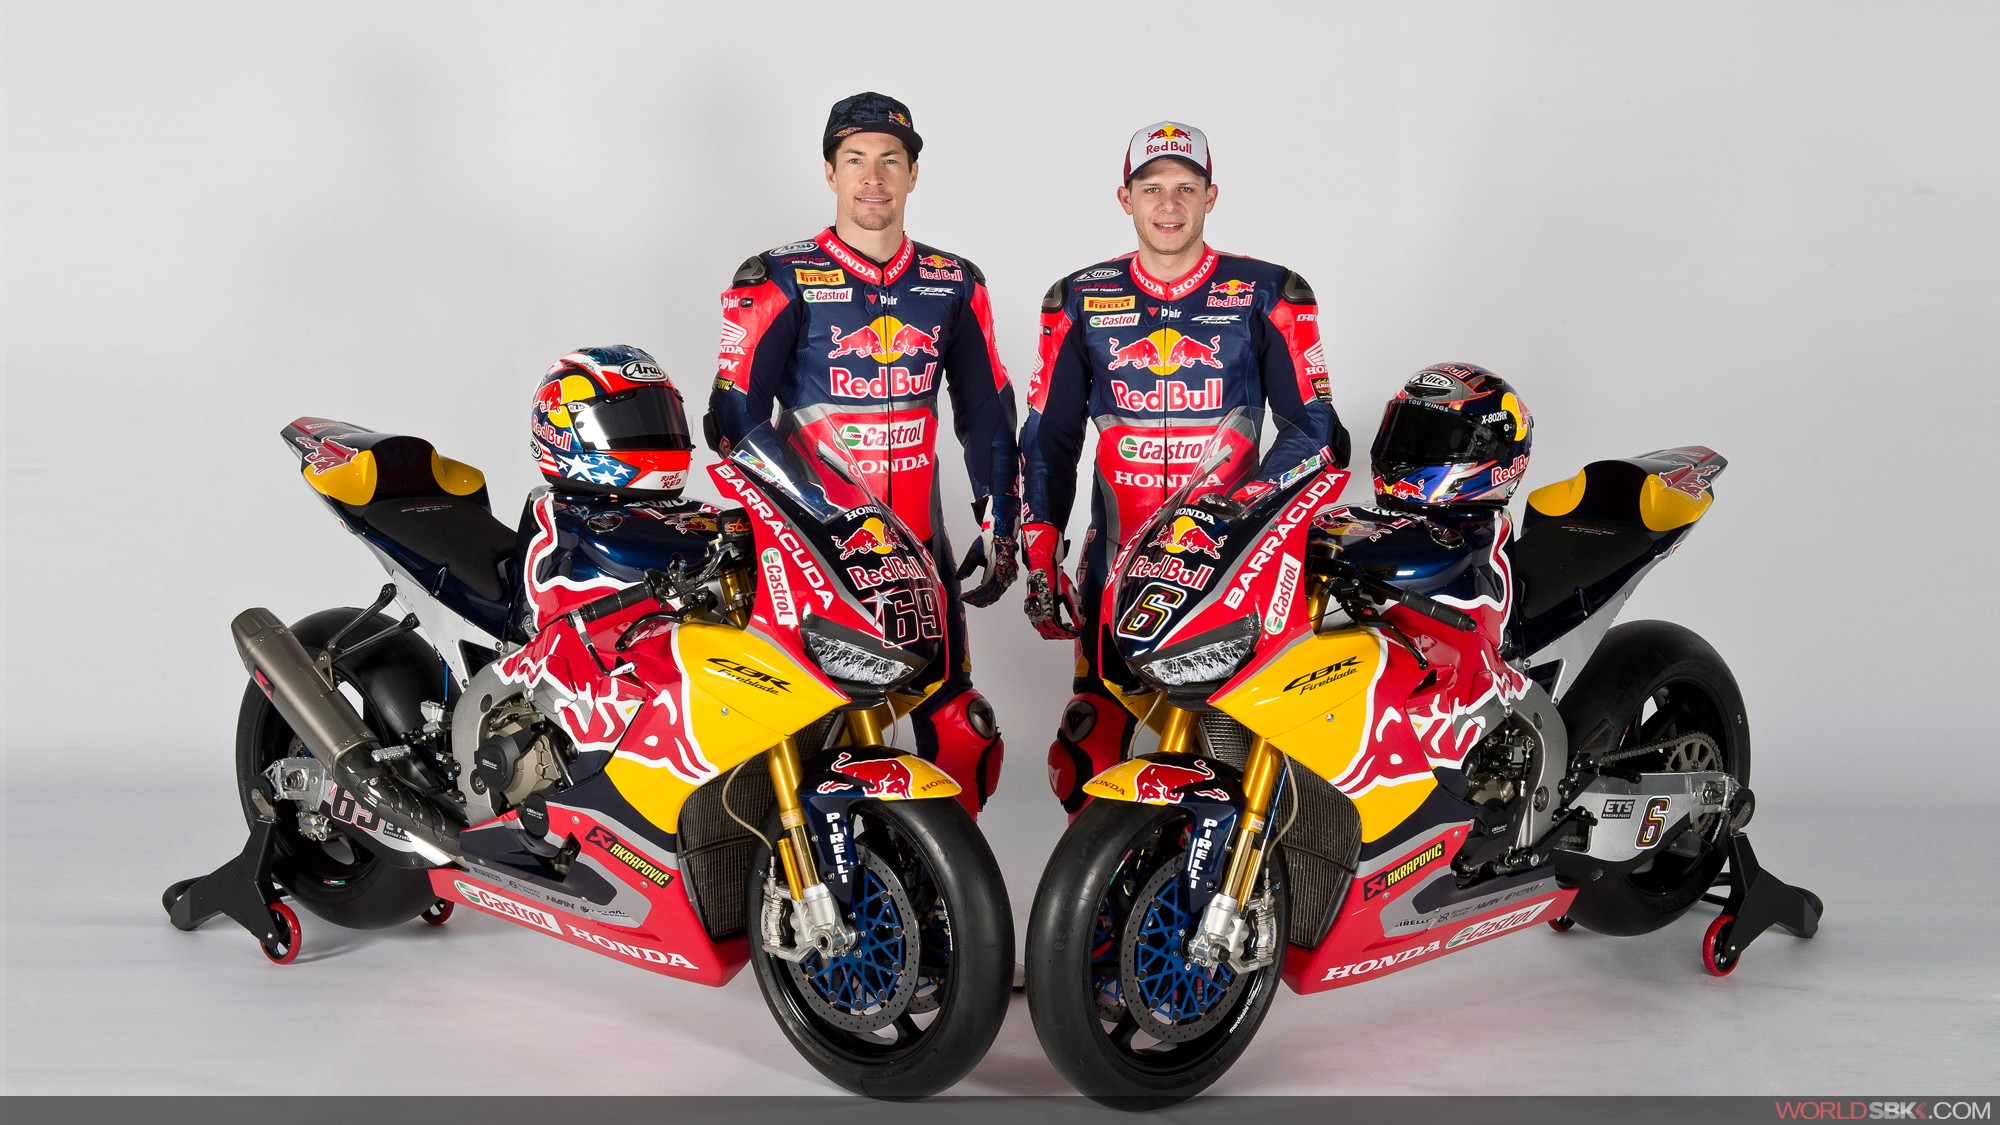 Nicky Hayden e Stefan Bradl, piloti del team Red Bull Honda World Superbike, foto: worldsbk.com